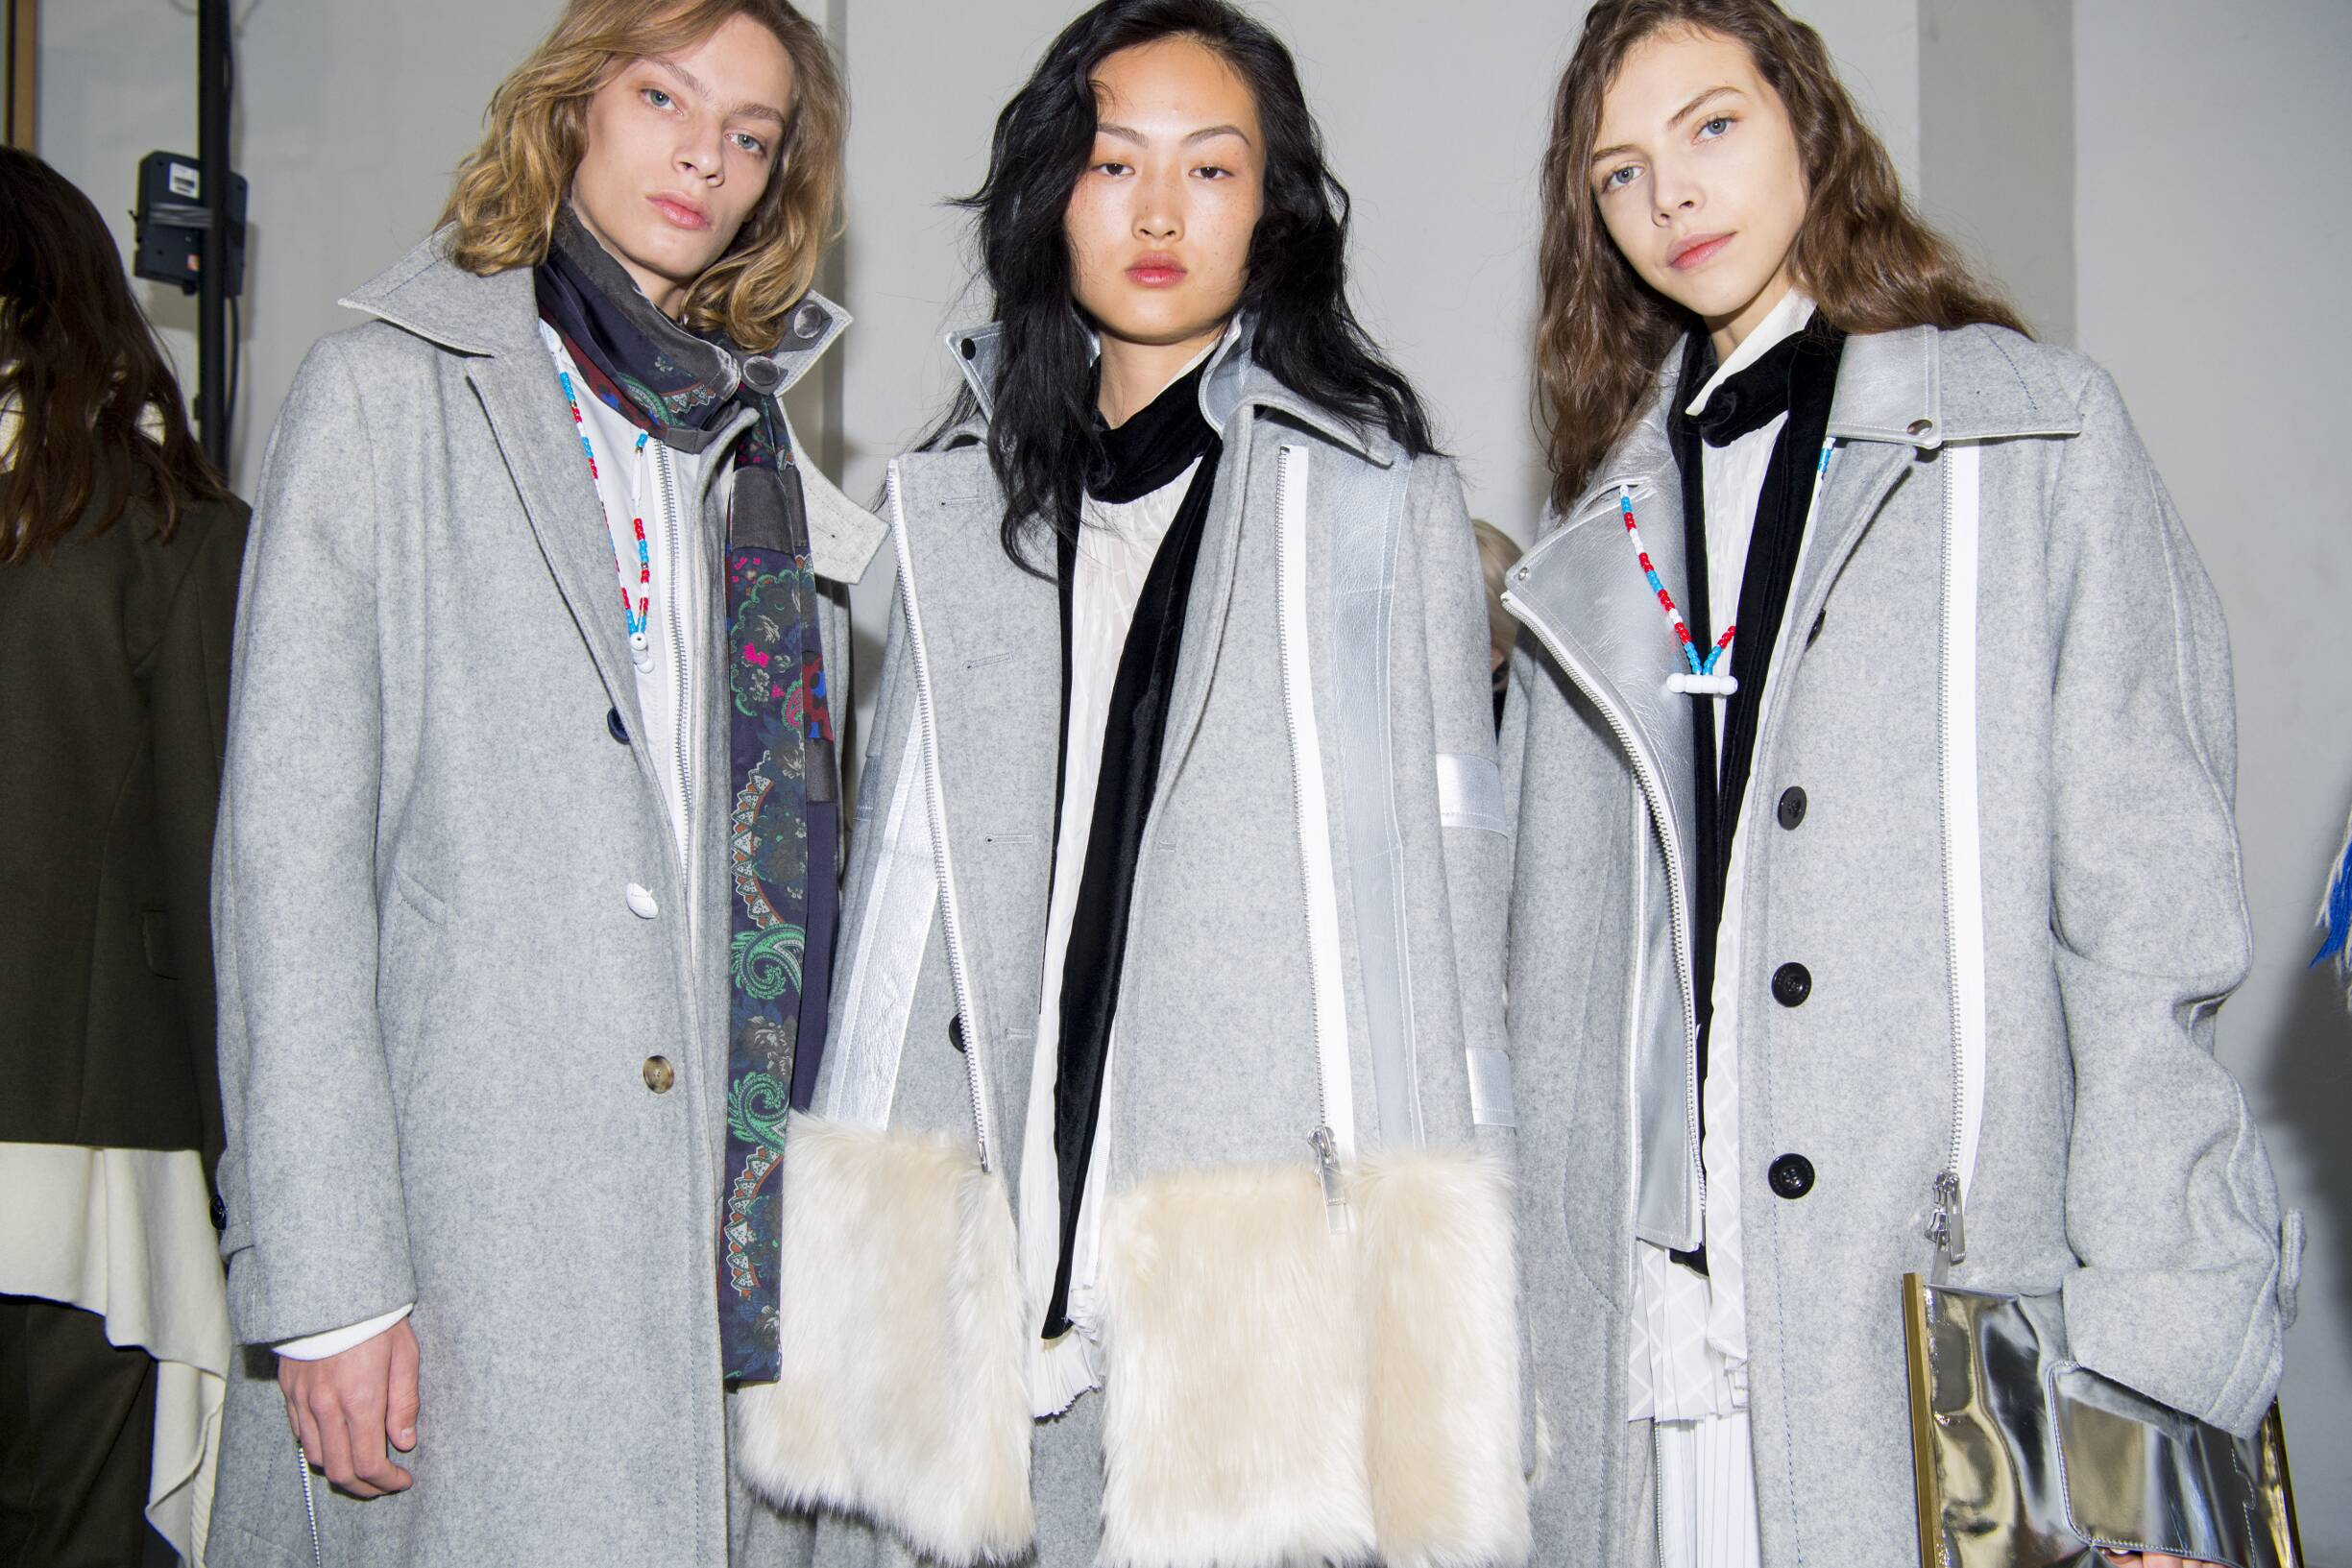 Backstage Sacai Models Womenswear Trends 2019